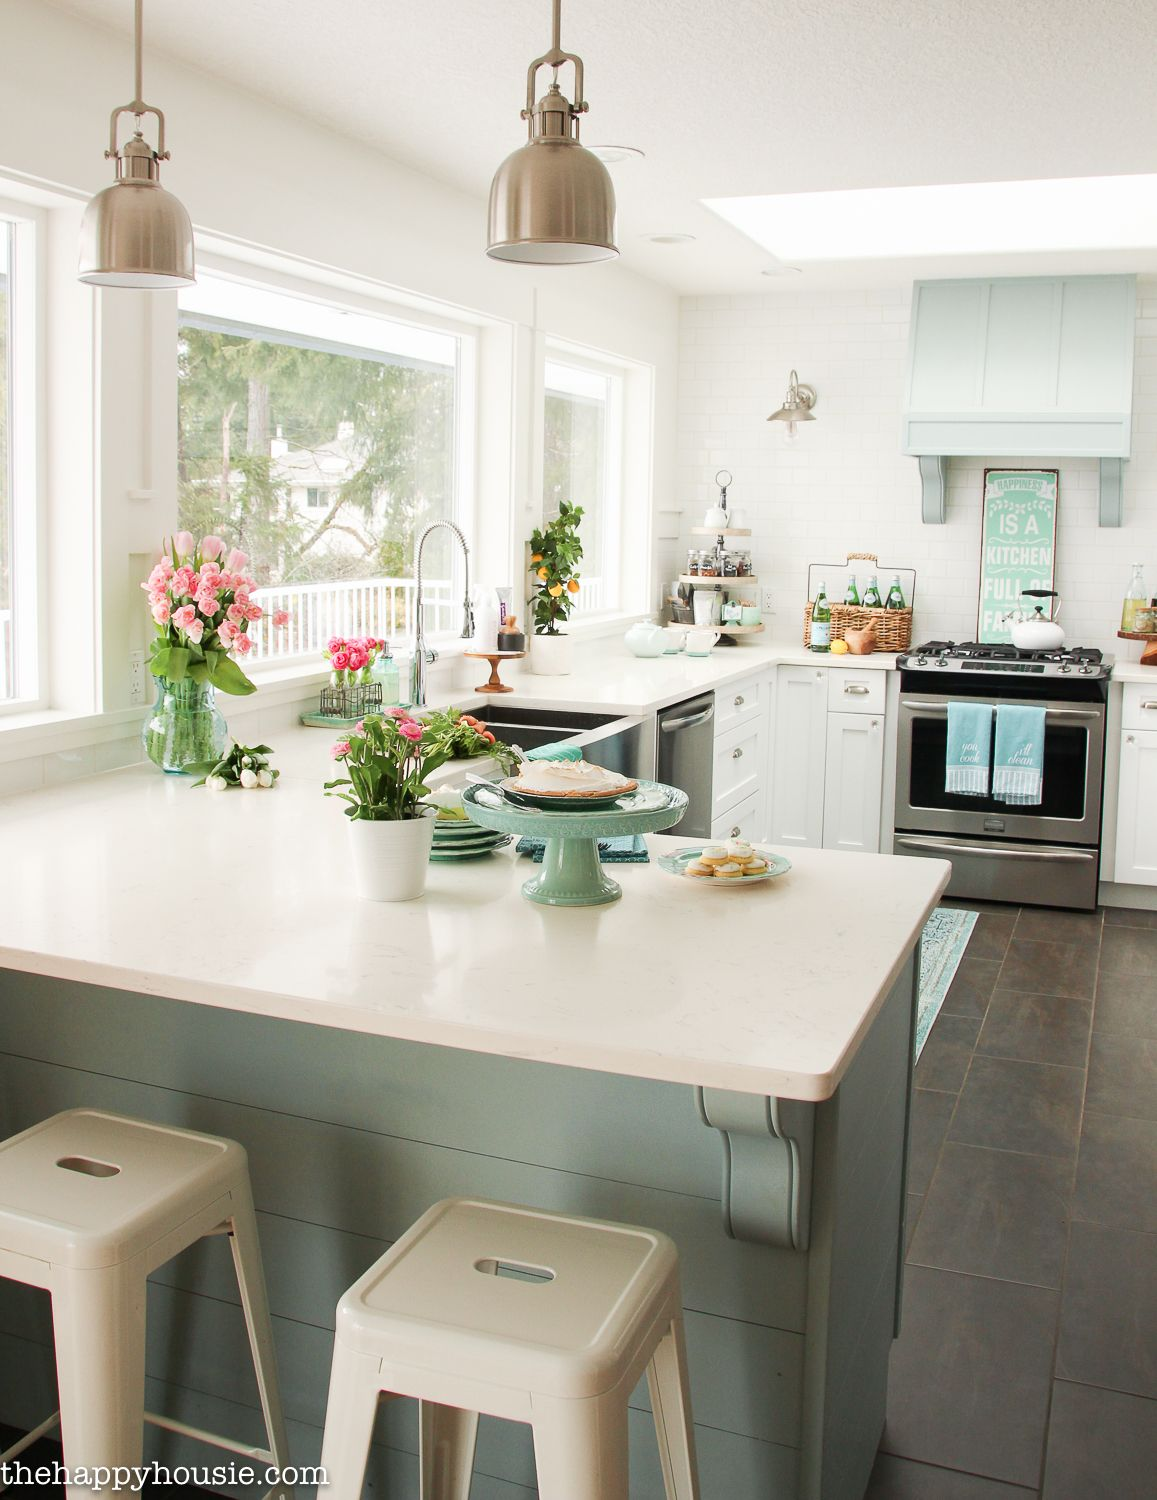 ge artistry kitchen fifth wheel with outdoor coastal cottage style spring tour k i t c h e n the happy housie